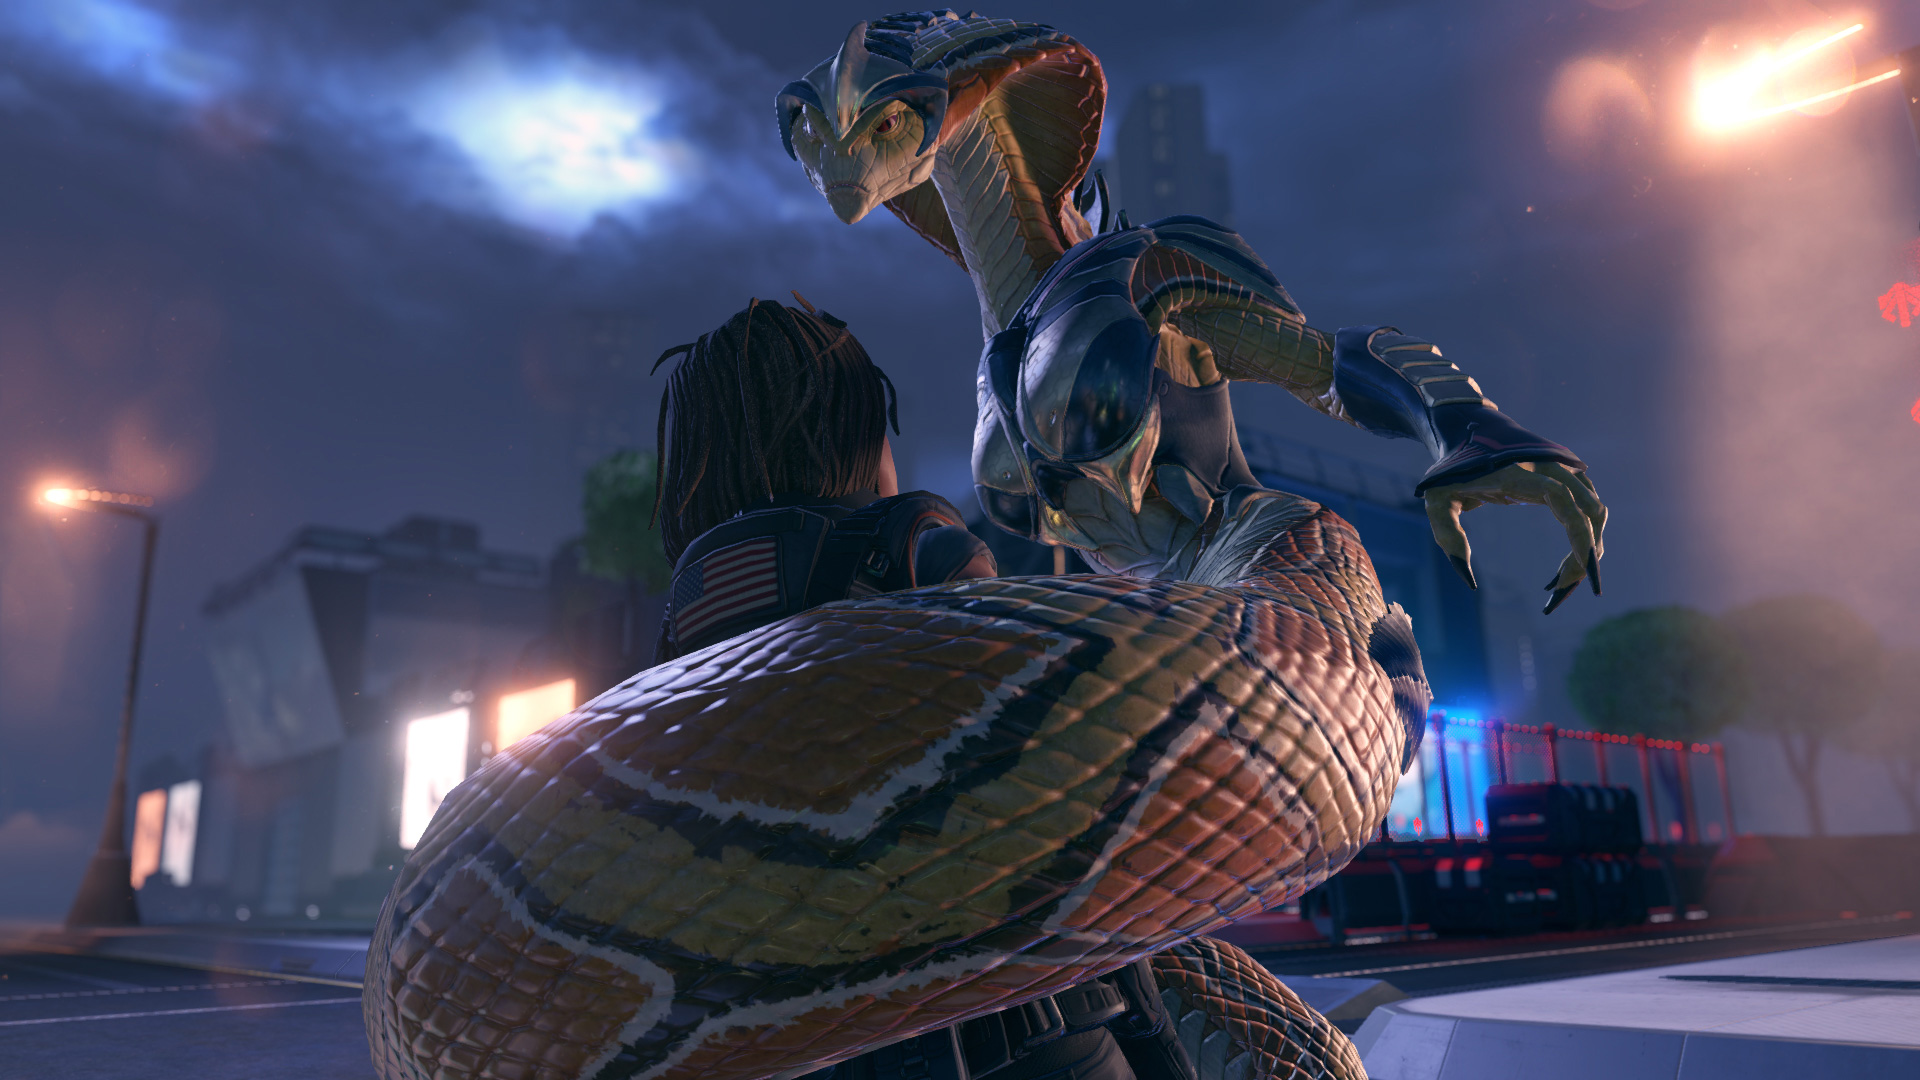 XCOM 2 Viper bind screenshot.jpg